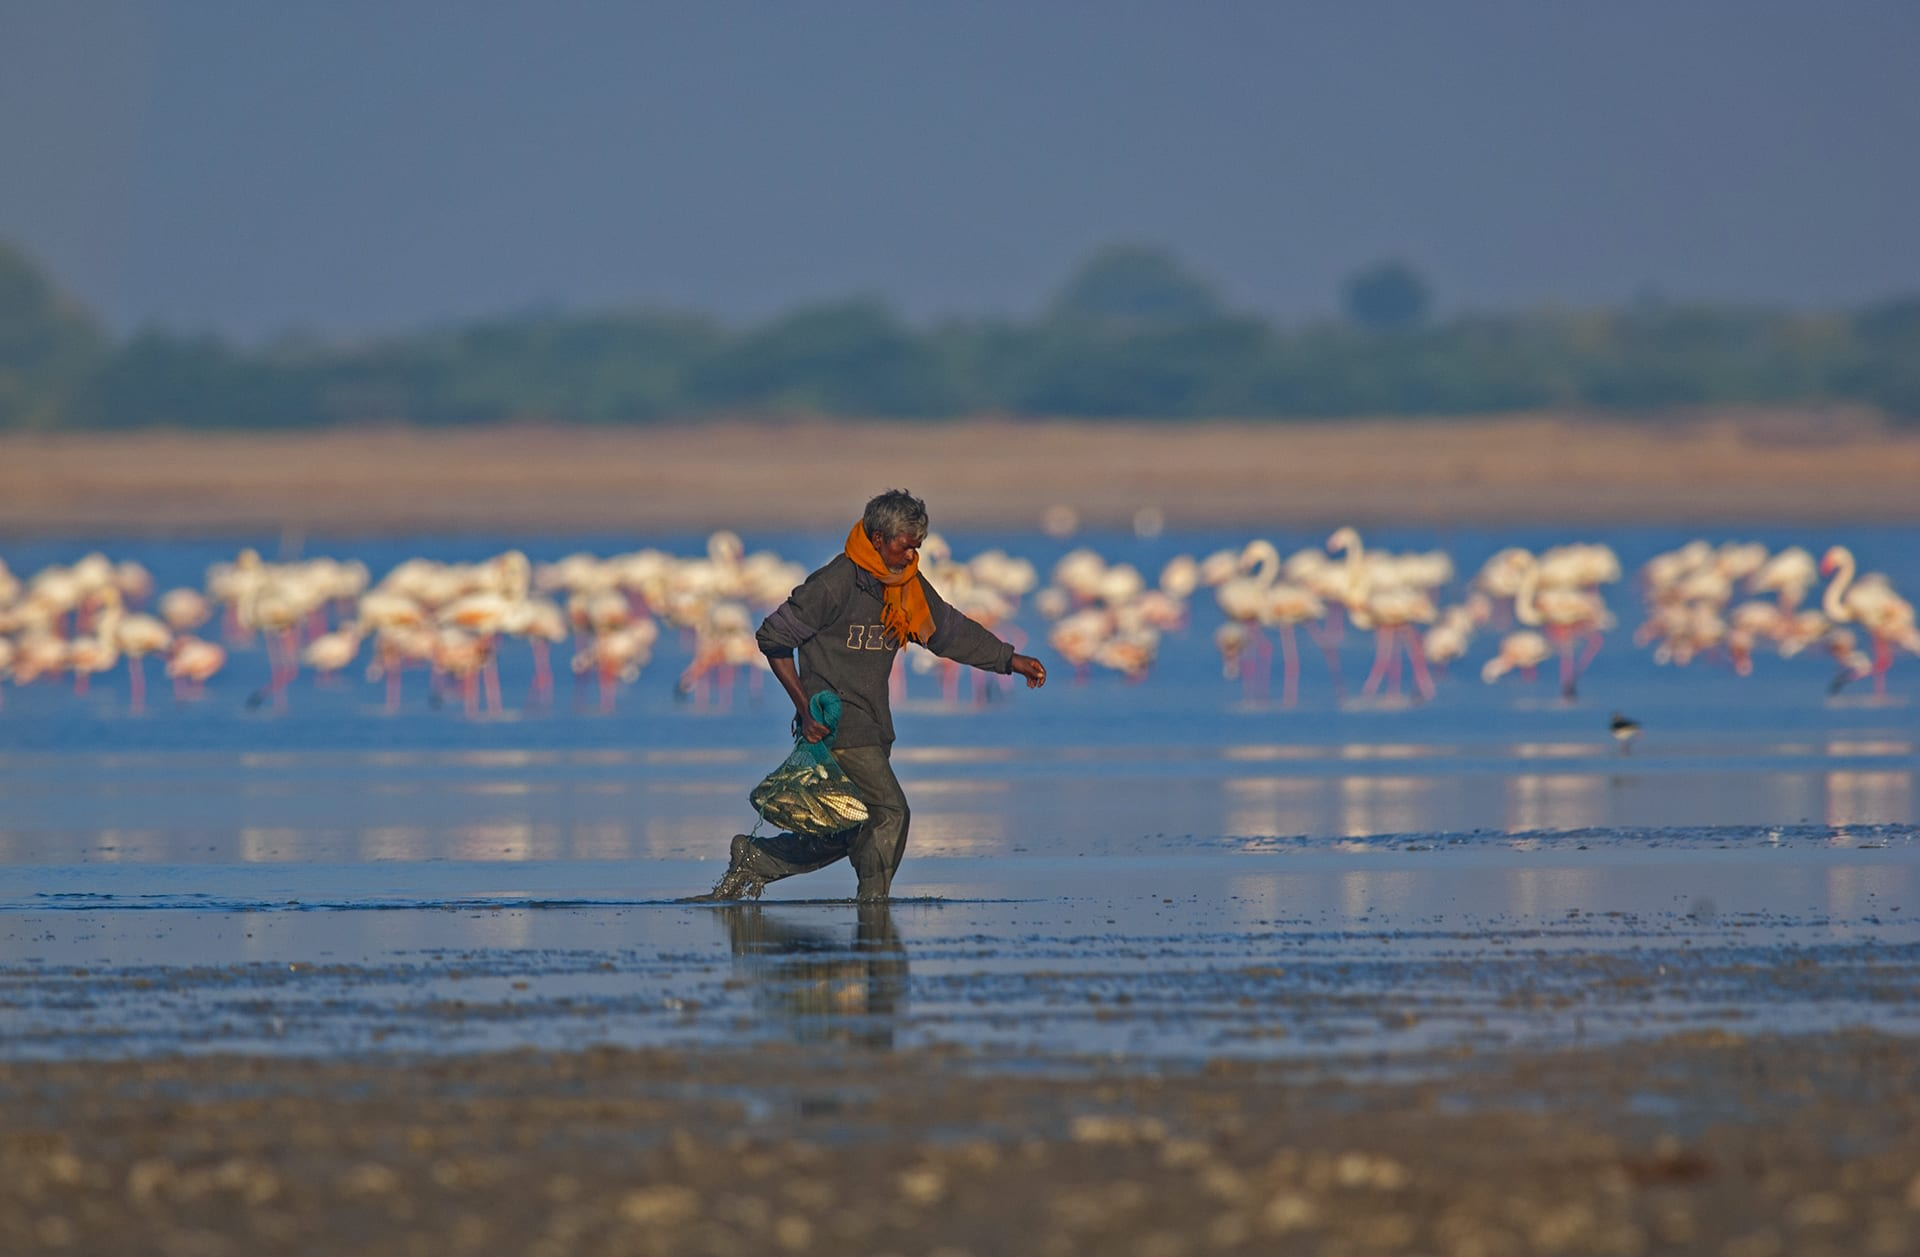 """Flamingos are powerful birds, capable of long migratory journeys and survival in caustic landscapes like the Rann, but they are also vulnerable to anthropogenic factors.  The pumping of the salt mines, for instance, often interrupts their breeding cycle. """"My suggestion was to give the local community some monetary compensation, and request them to start salt panning about a month later, after the birds have completed their breeding cycle."""" Sometimes, fisherfolk take their dogs on fishing trips, """"and I have seen the dogs jump out of the boat and attack nests,"""" says Shah. """"Even though there is hardly any direct interaction between humans and the birds, they are still impacted."""""""